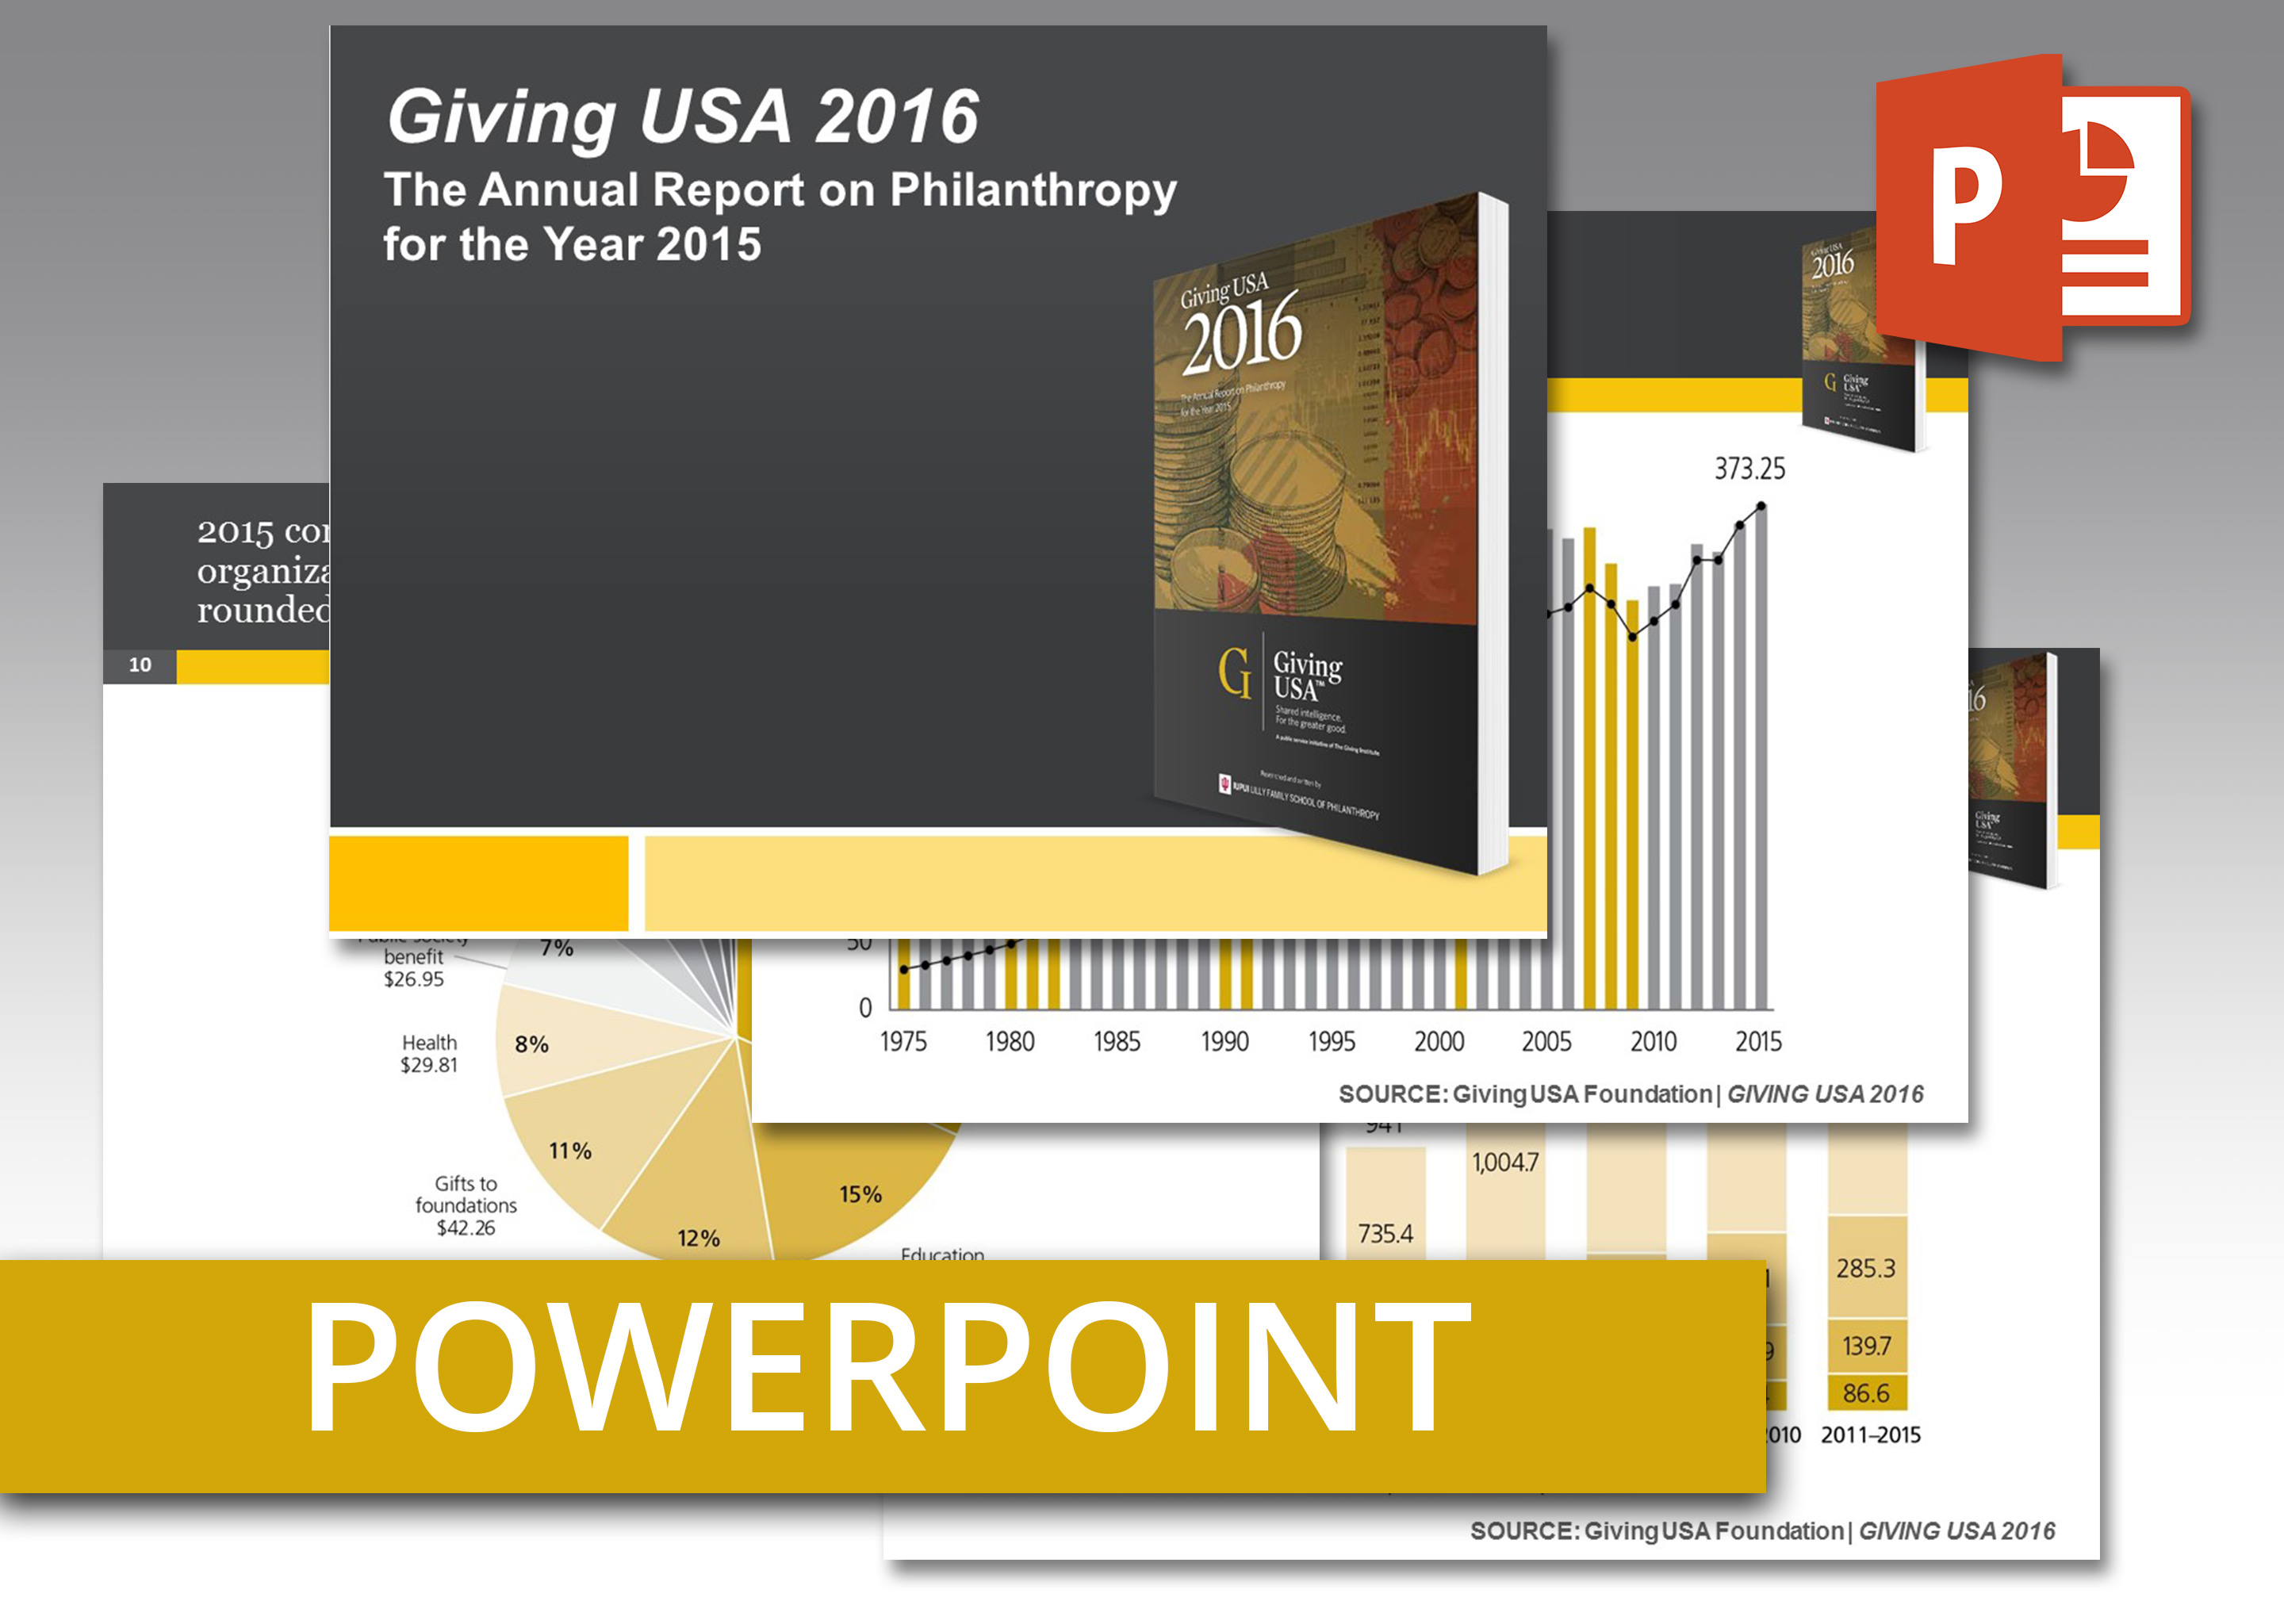 Usdgus  Personable Giving Usa  Powerpoint An Easytouse Presentation Of Report  With Glamorous Giving Usa  Powerpoint An Easytouse Presentation Of Report Findings Including Talking Points With Beautiful Powerpoint Invitation Template Also Export Powerpoint To Pdf In Addition Free Powerpoint Theme And Treaty Of Versailles Powerpoint As Well As How To Make Jeopardy Powerpoint Additionally Powerpoint Kiosk Mode From Givingusaorg With Usdgus  Glamorous Giving Usa  Powerpoint An Easytouse Presentation Of Report  With Beautiful Giving Usa  Powerpoint An Easytouse Presentation Of Report Findings Including Talking Points And Personable Powerpoint Invitation Template Also Export Powerpoint To Pdf In Addition Free Powerpoint Theme From Givingusaorg